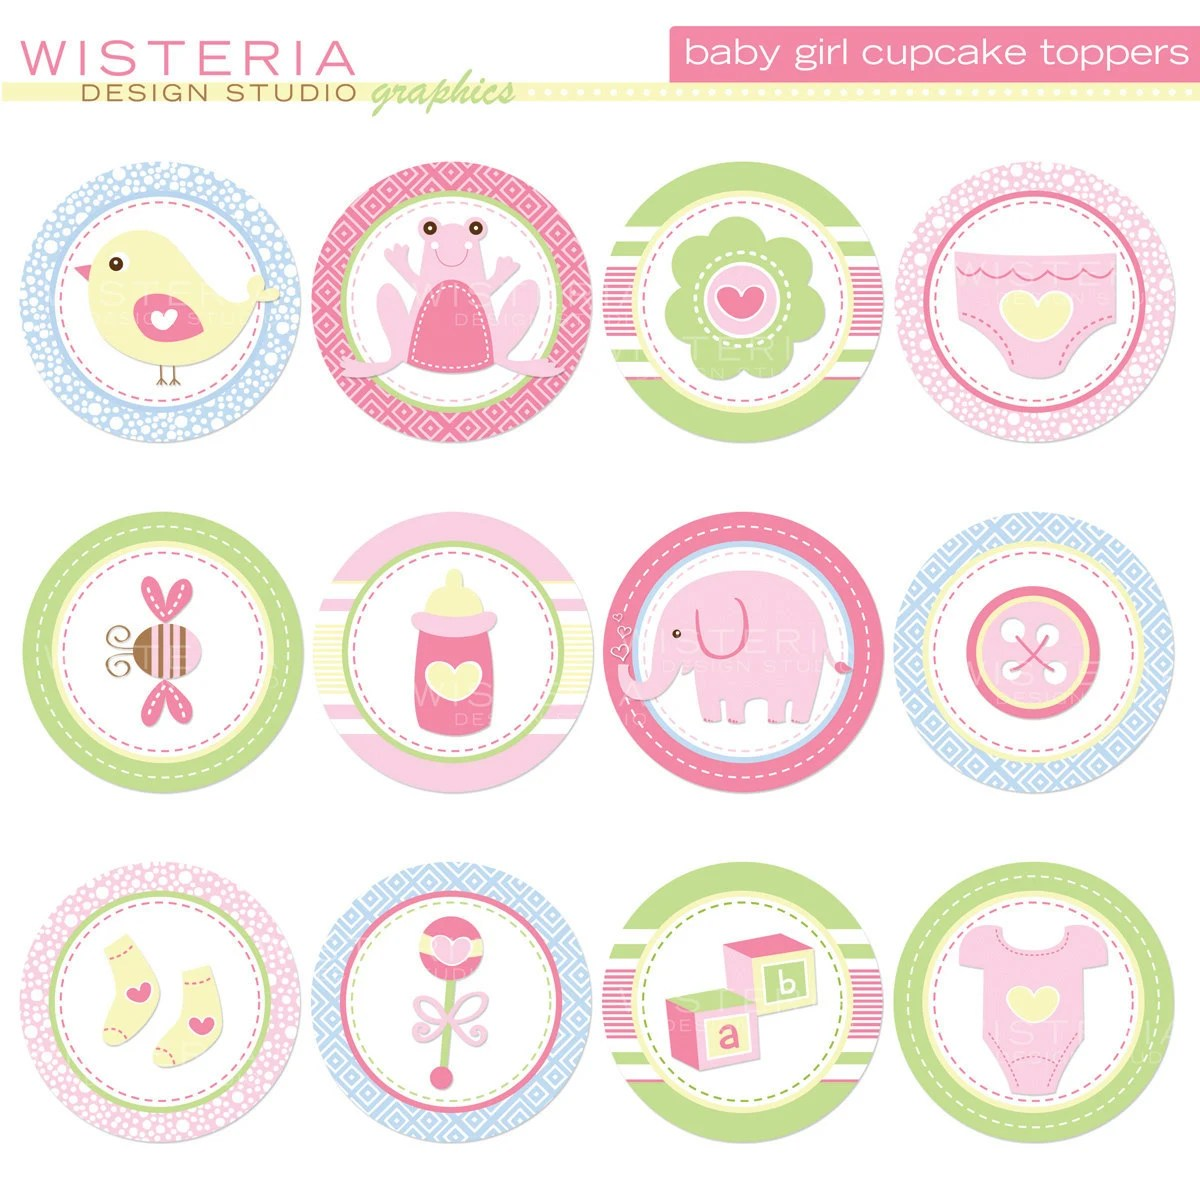 Baby Girl Cupcake Toppers Diy Printables By Wisteriadesignstudio